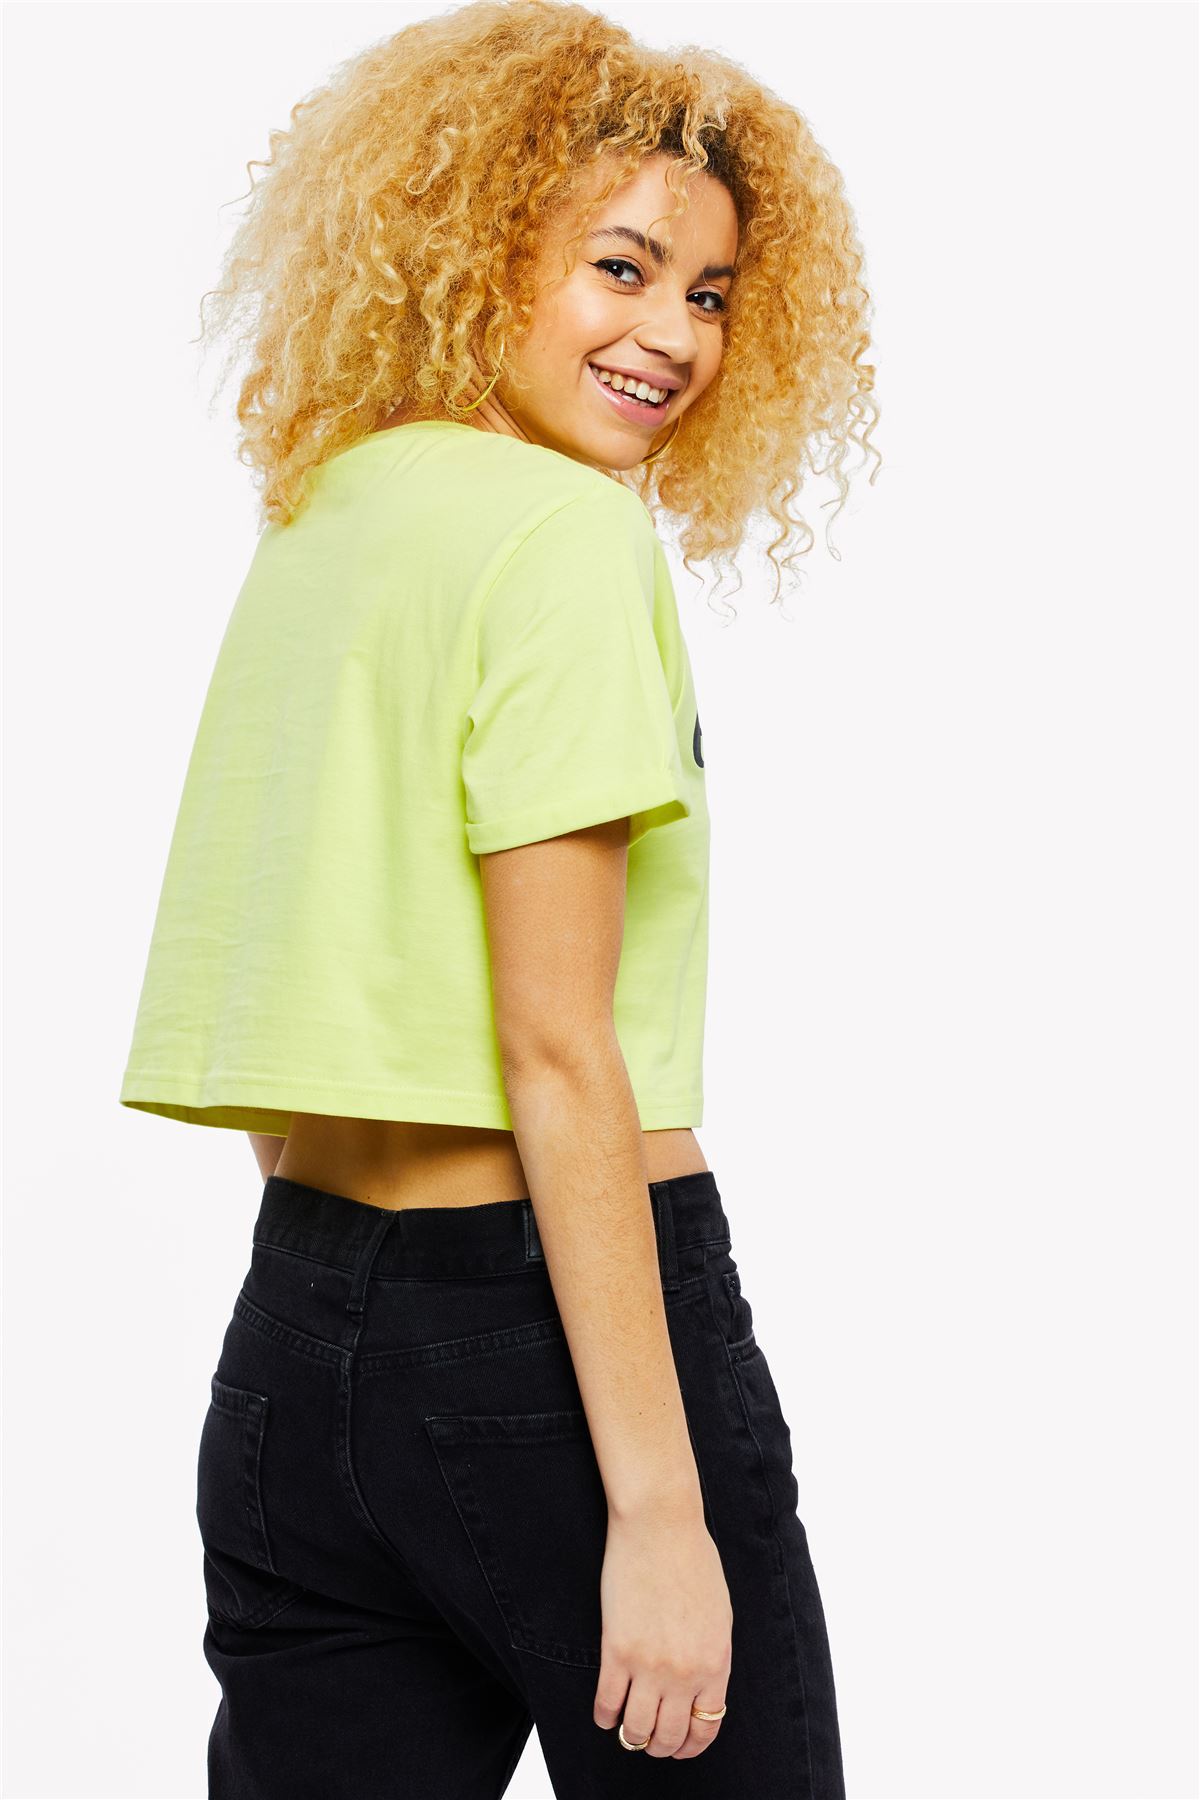 Ellesse-End-of-Line-Clearance-Sale-Bargain-Womens-Tops-T-Shirts-Free-UK-Ship thumbnail 8